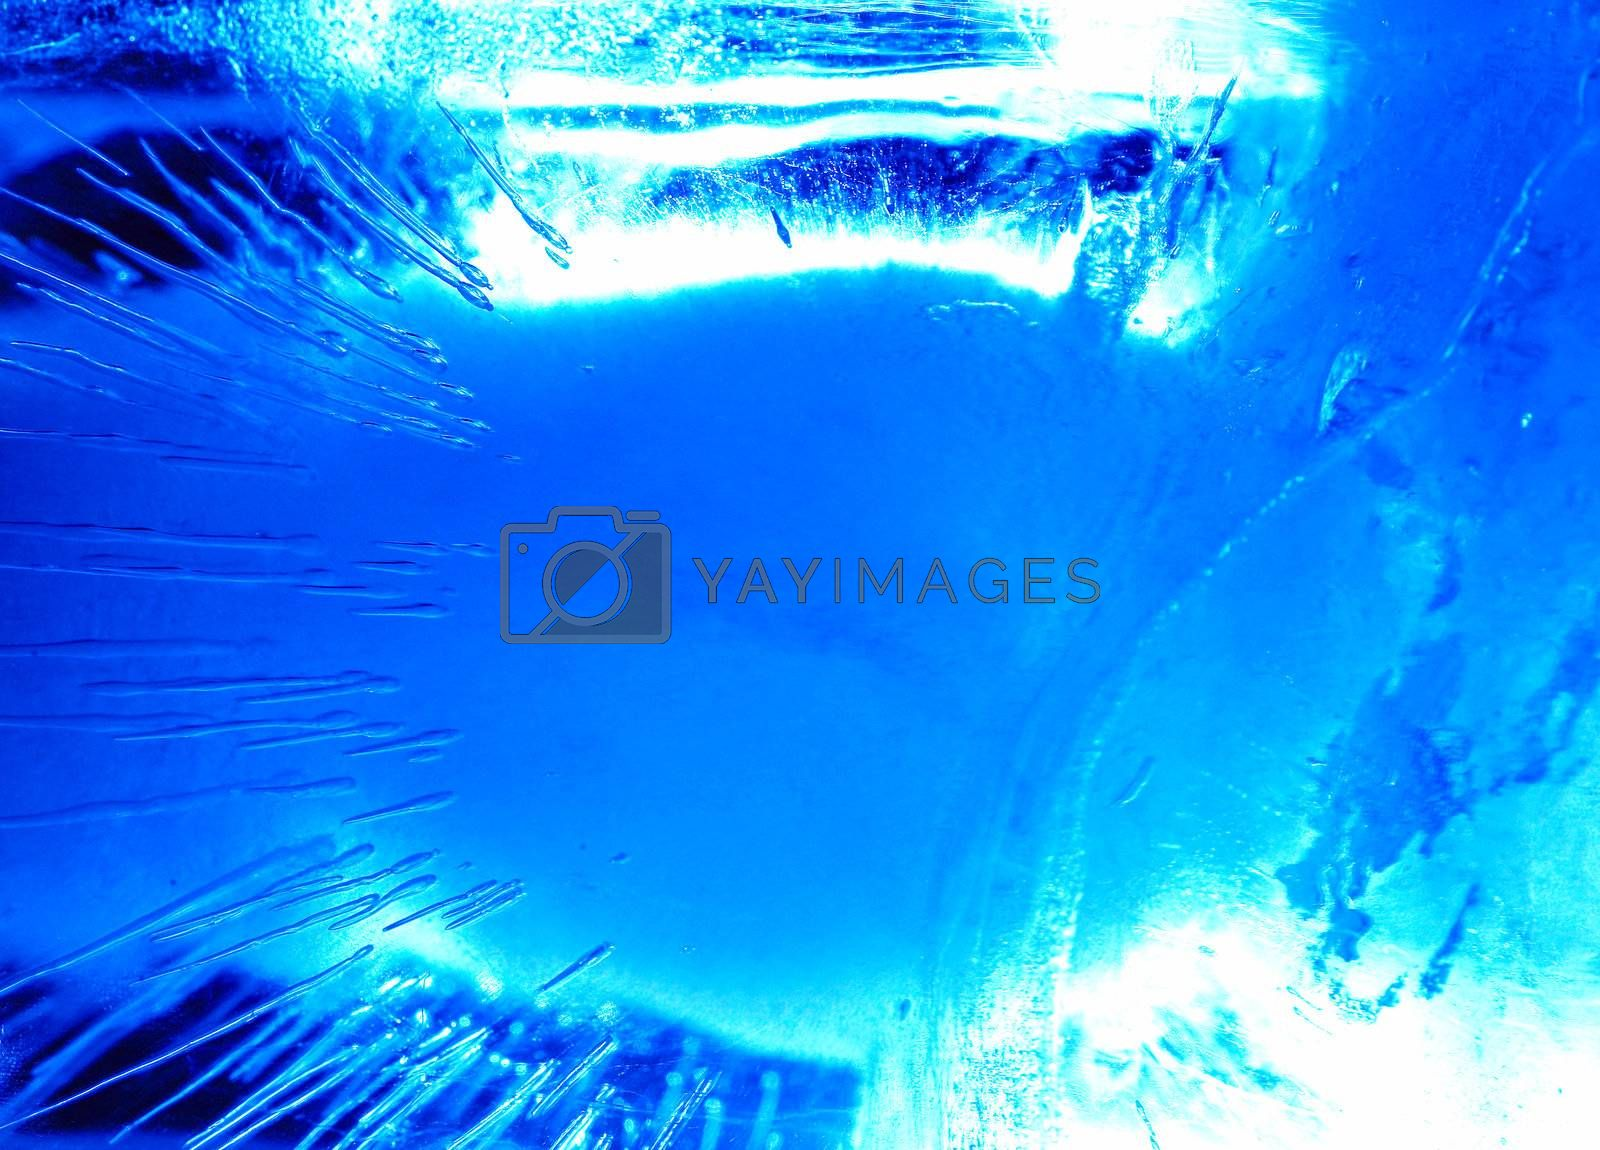 Royalty free image of Abstract ice figure, var2 by DeusNoxious